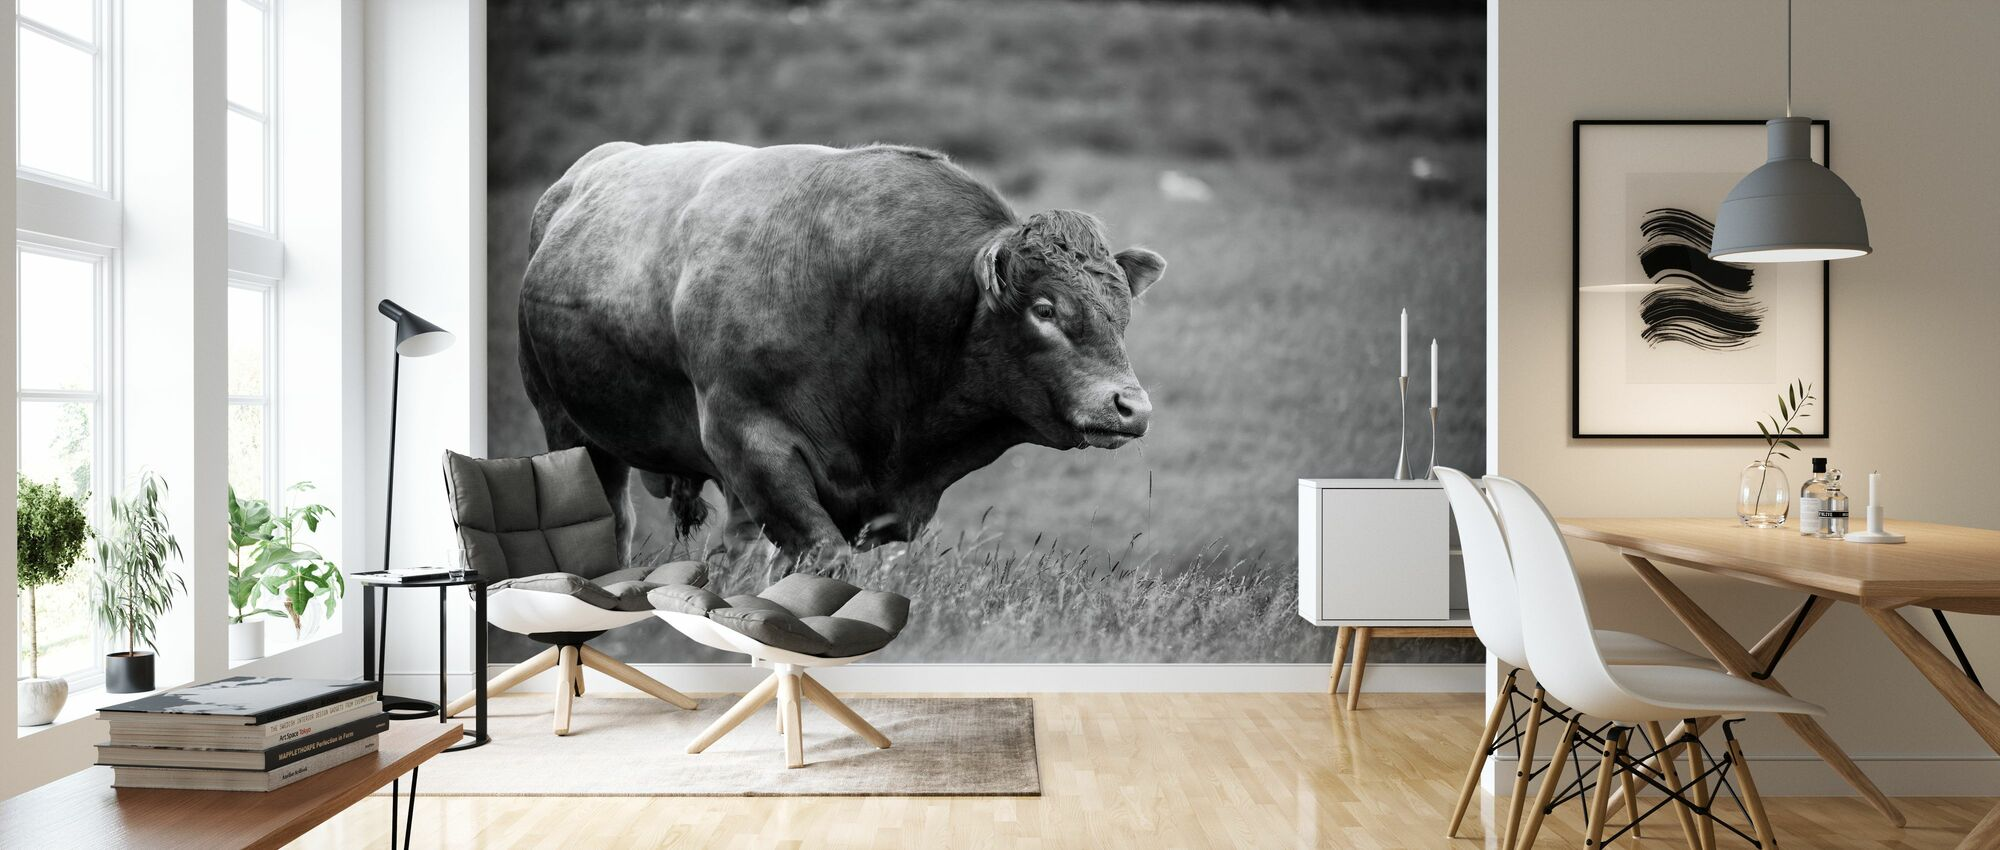 The Bull - Wallpaper - Living Room